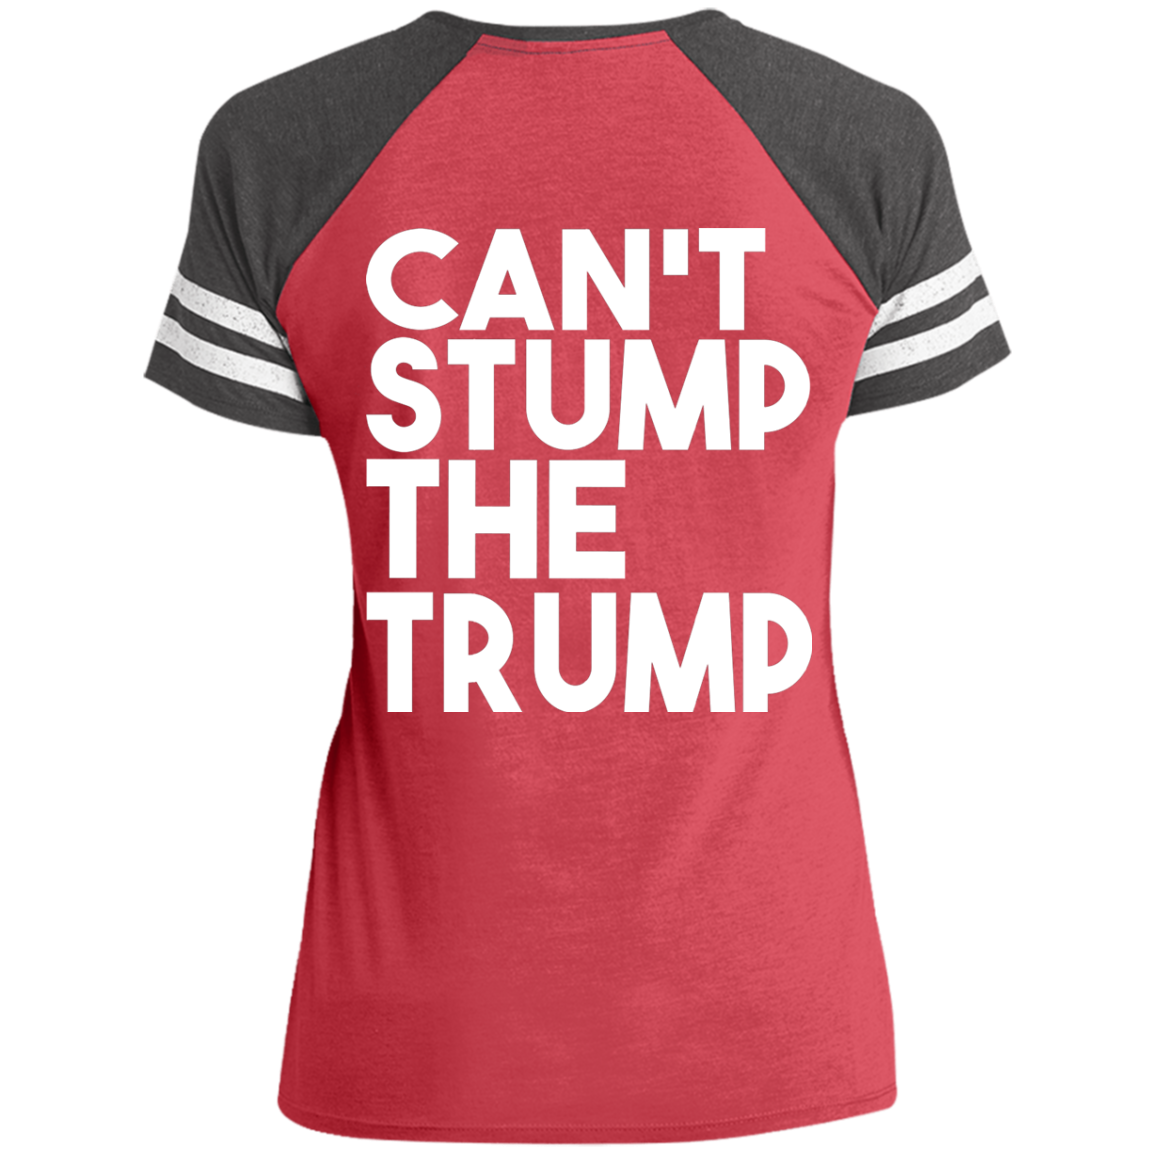 CAN'T STUMP THE TRUMP: Ladies' Game V-Neck T-Shirt